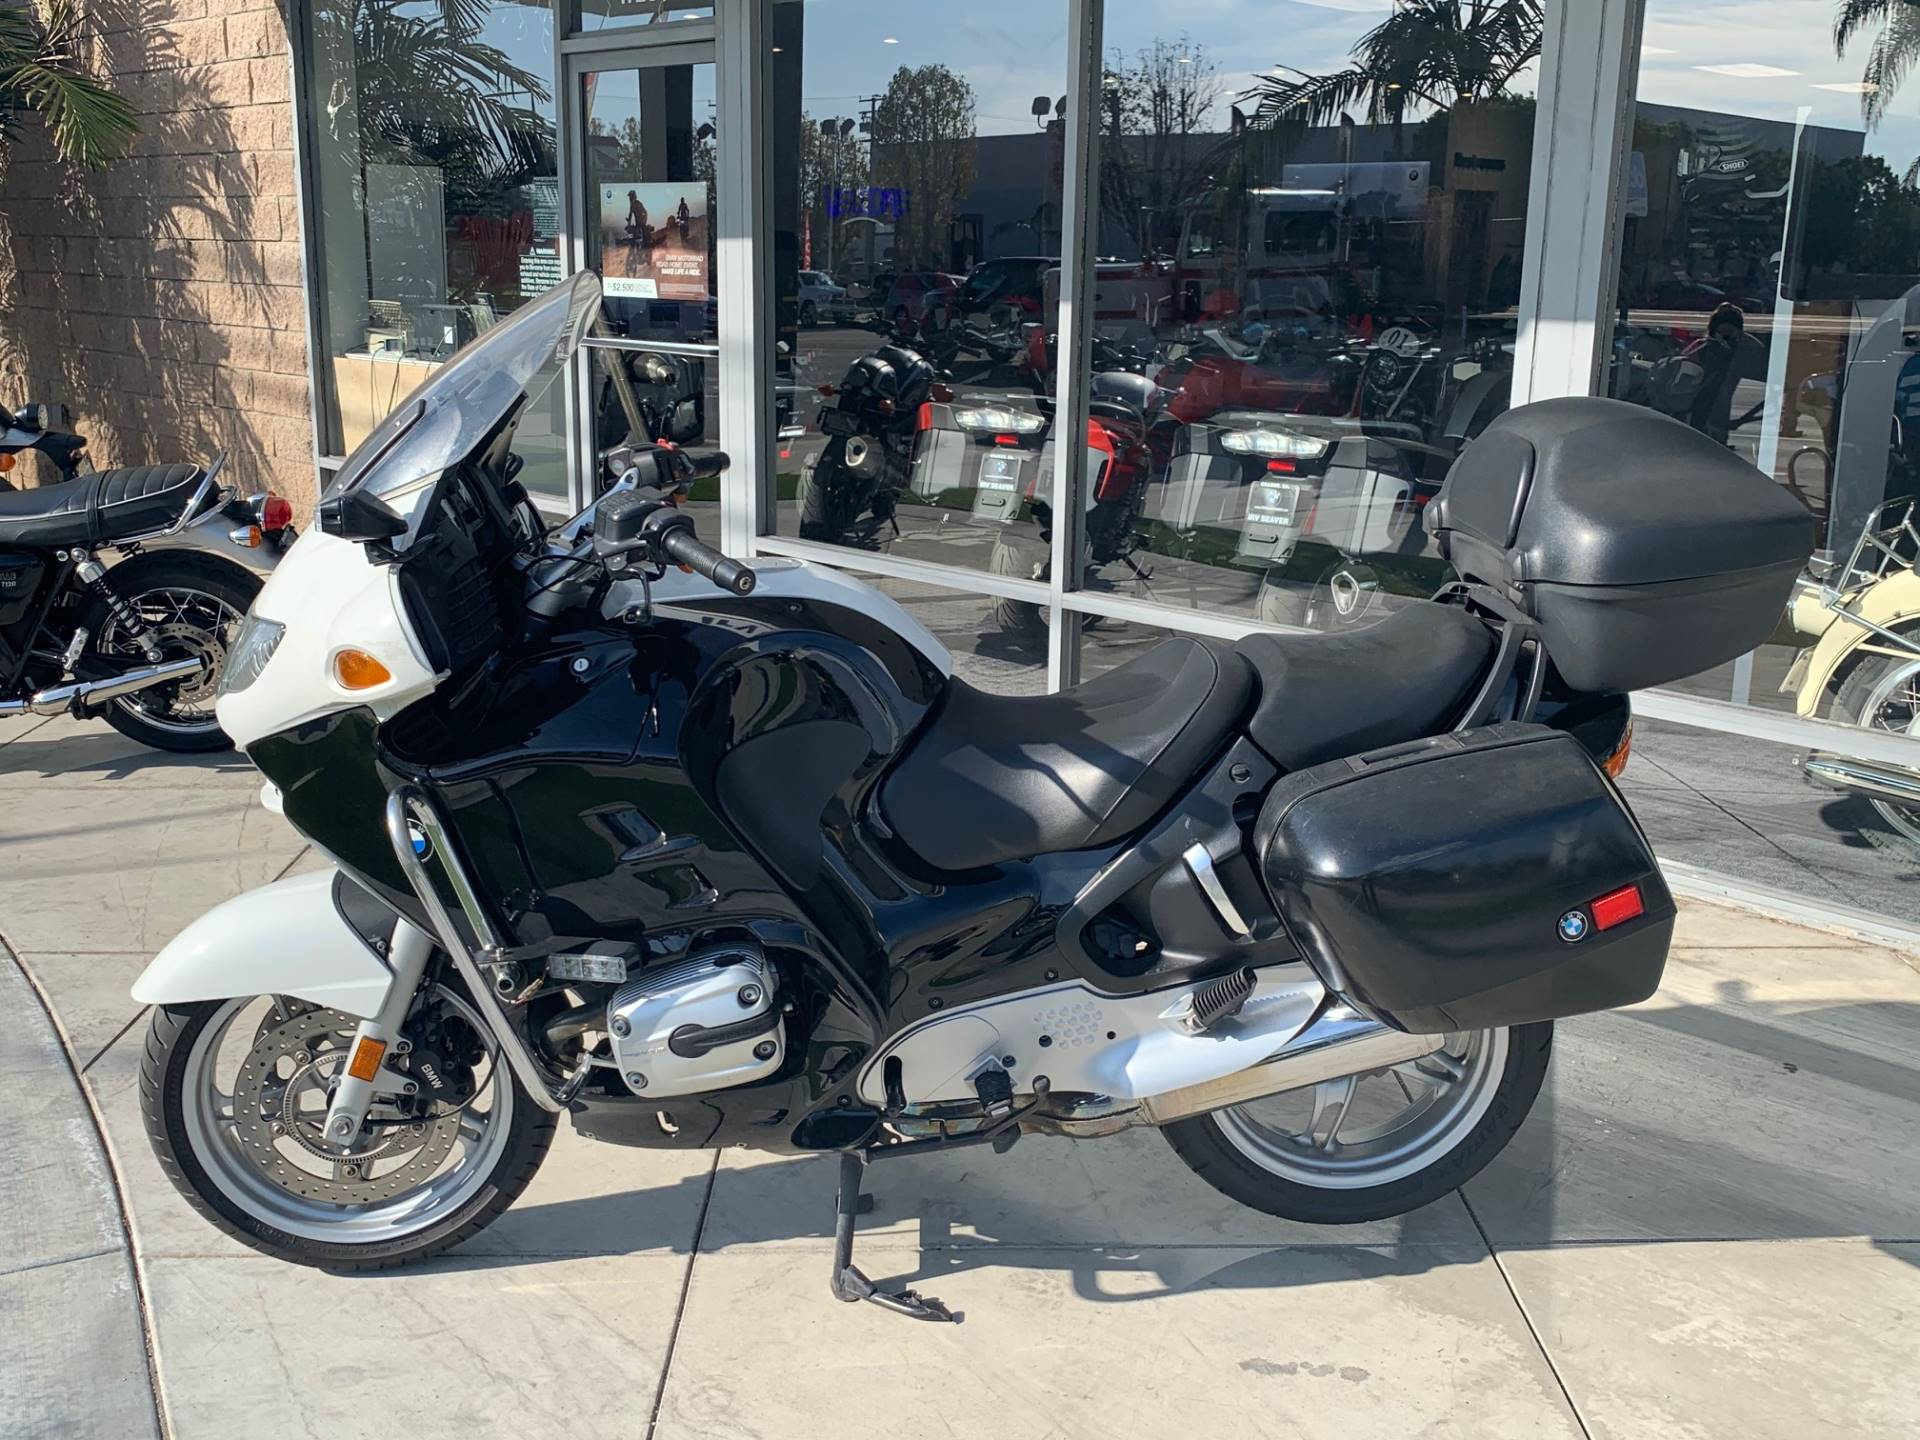 2004 BMW R 1150 RT (ABS) in Orange, California - Photo 1